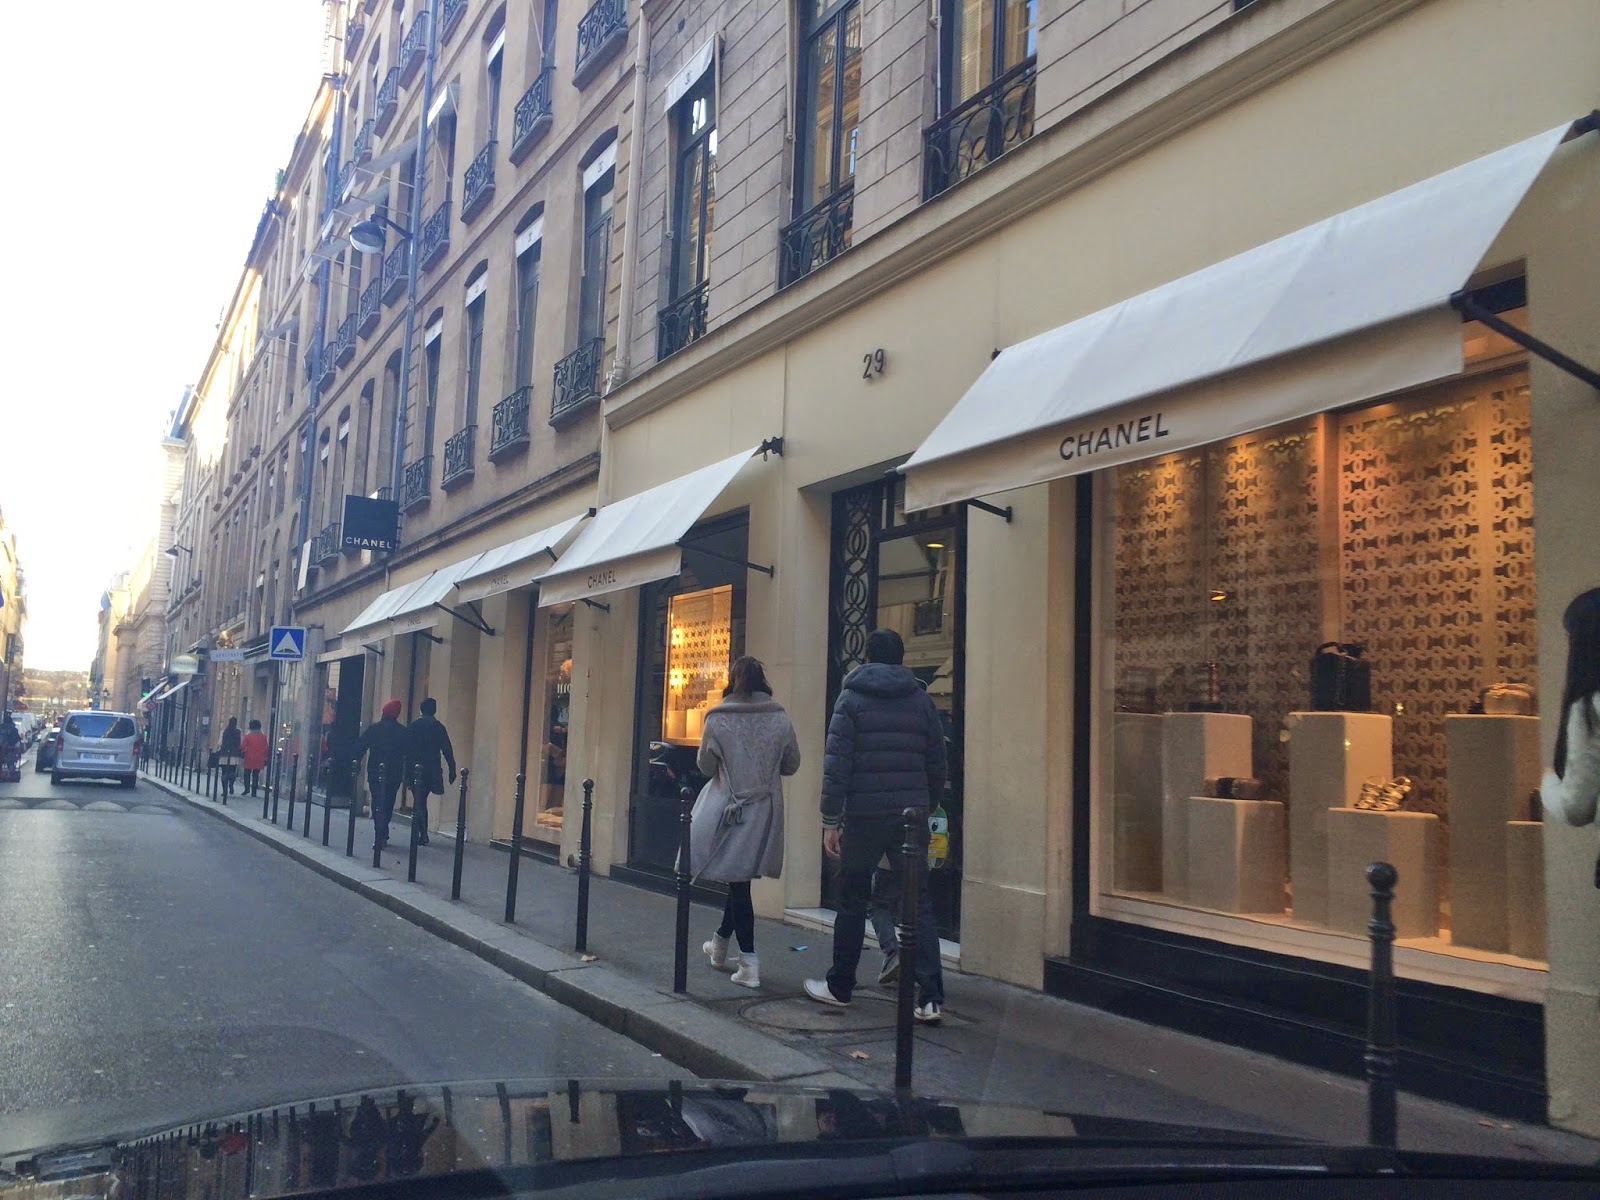 31 rue cambon paris hollie hobin for Chanel locations in paris